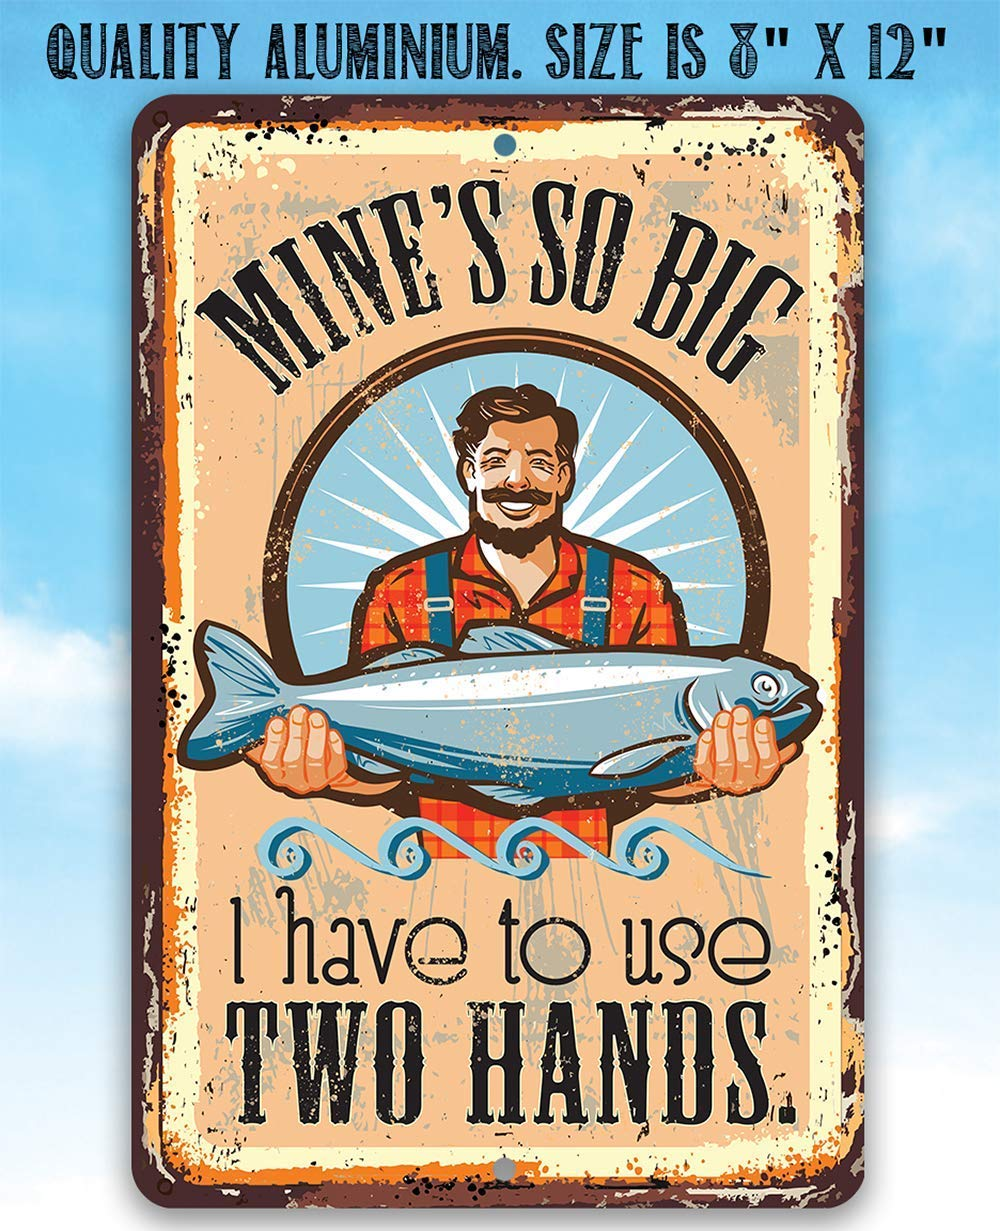 8 x 12 Use Indoor//Outdoor and Beach House Decor Metal Sign Mines So Big Fishing Lake House Durable Metal Sign Makes a Funny Bait Shop